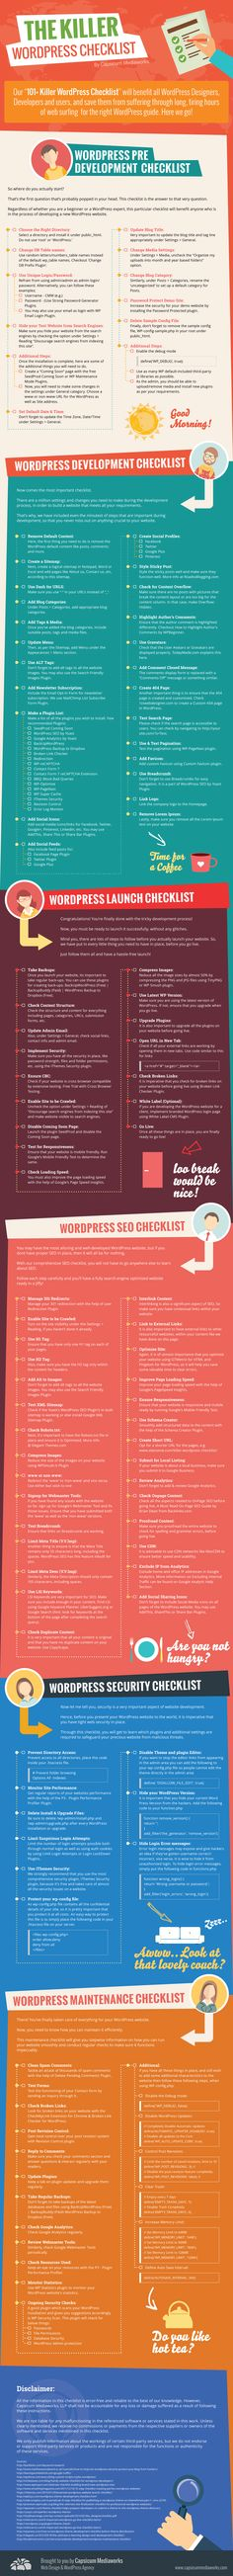 """""""The Killer WordPress Checklist Infographic"""" by Capsicum Mediaworks LLP is an awesome resource for any web designer building out an entire WordPress website from start to finish."""